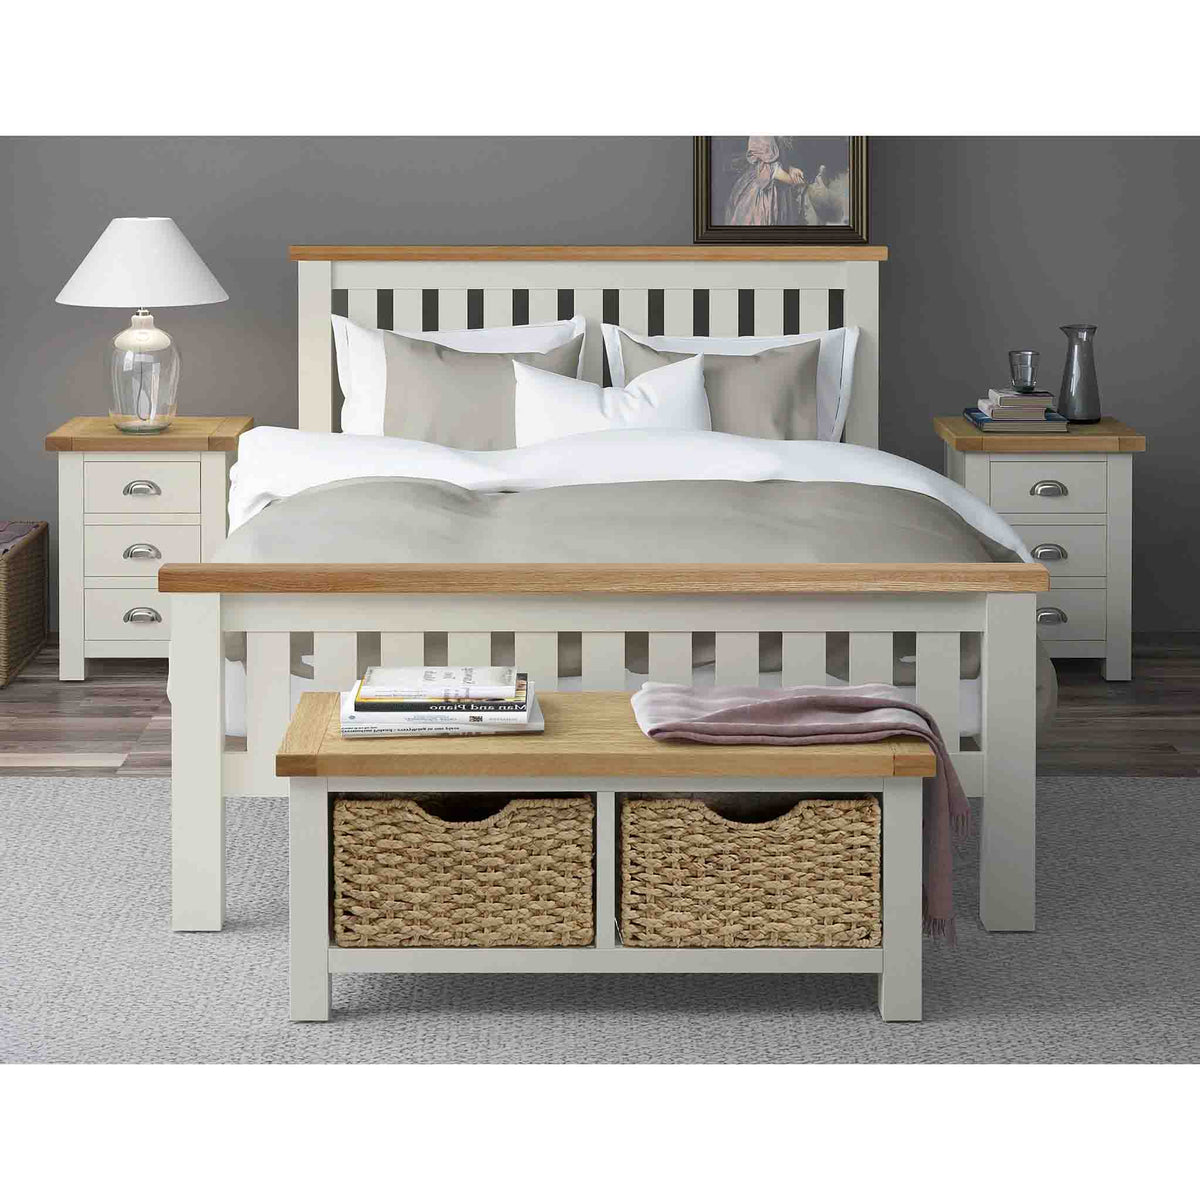 Decorative bedroom image of The Daymer Cream Wooden Double Bed Frame with Oak Tops